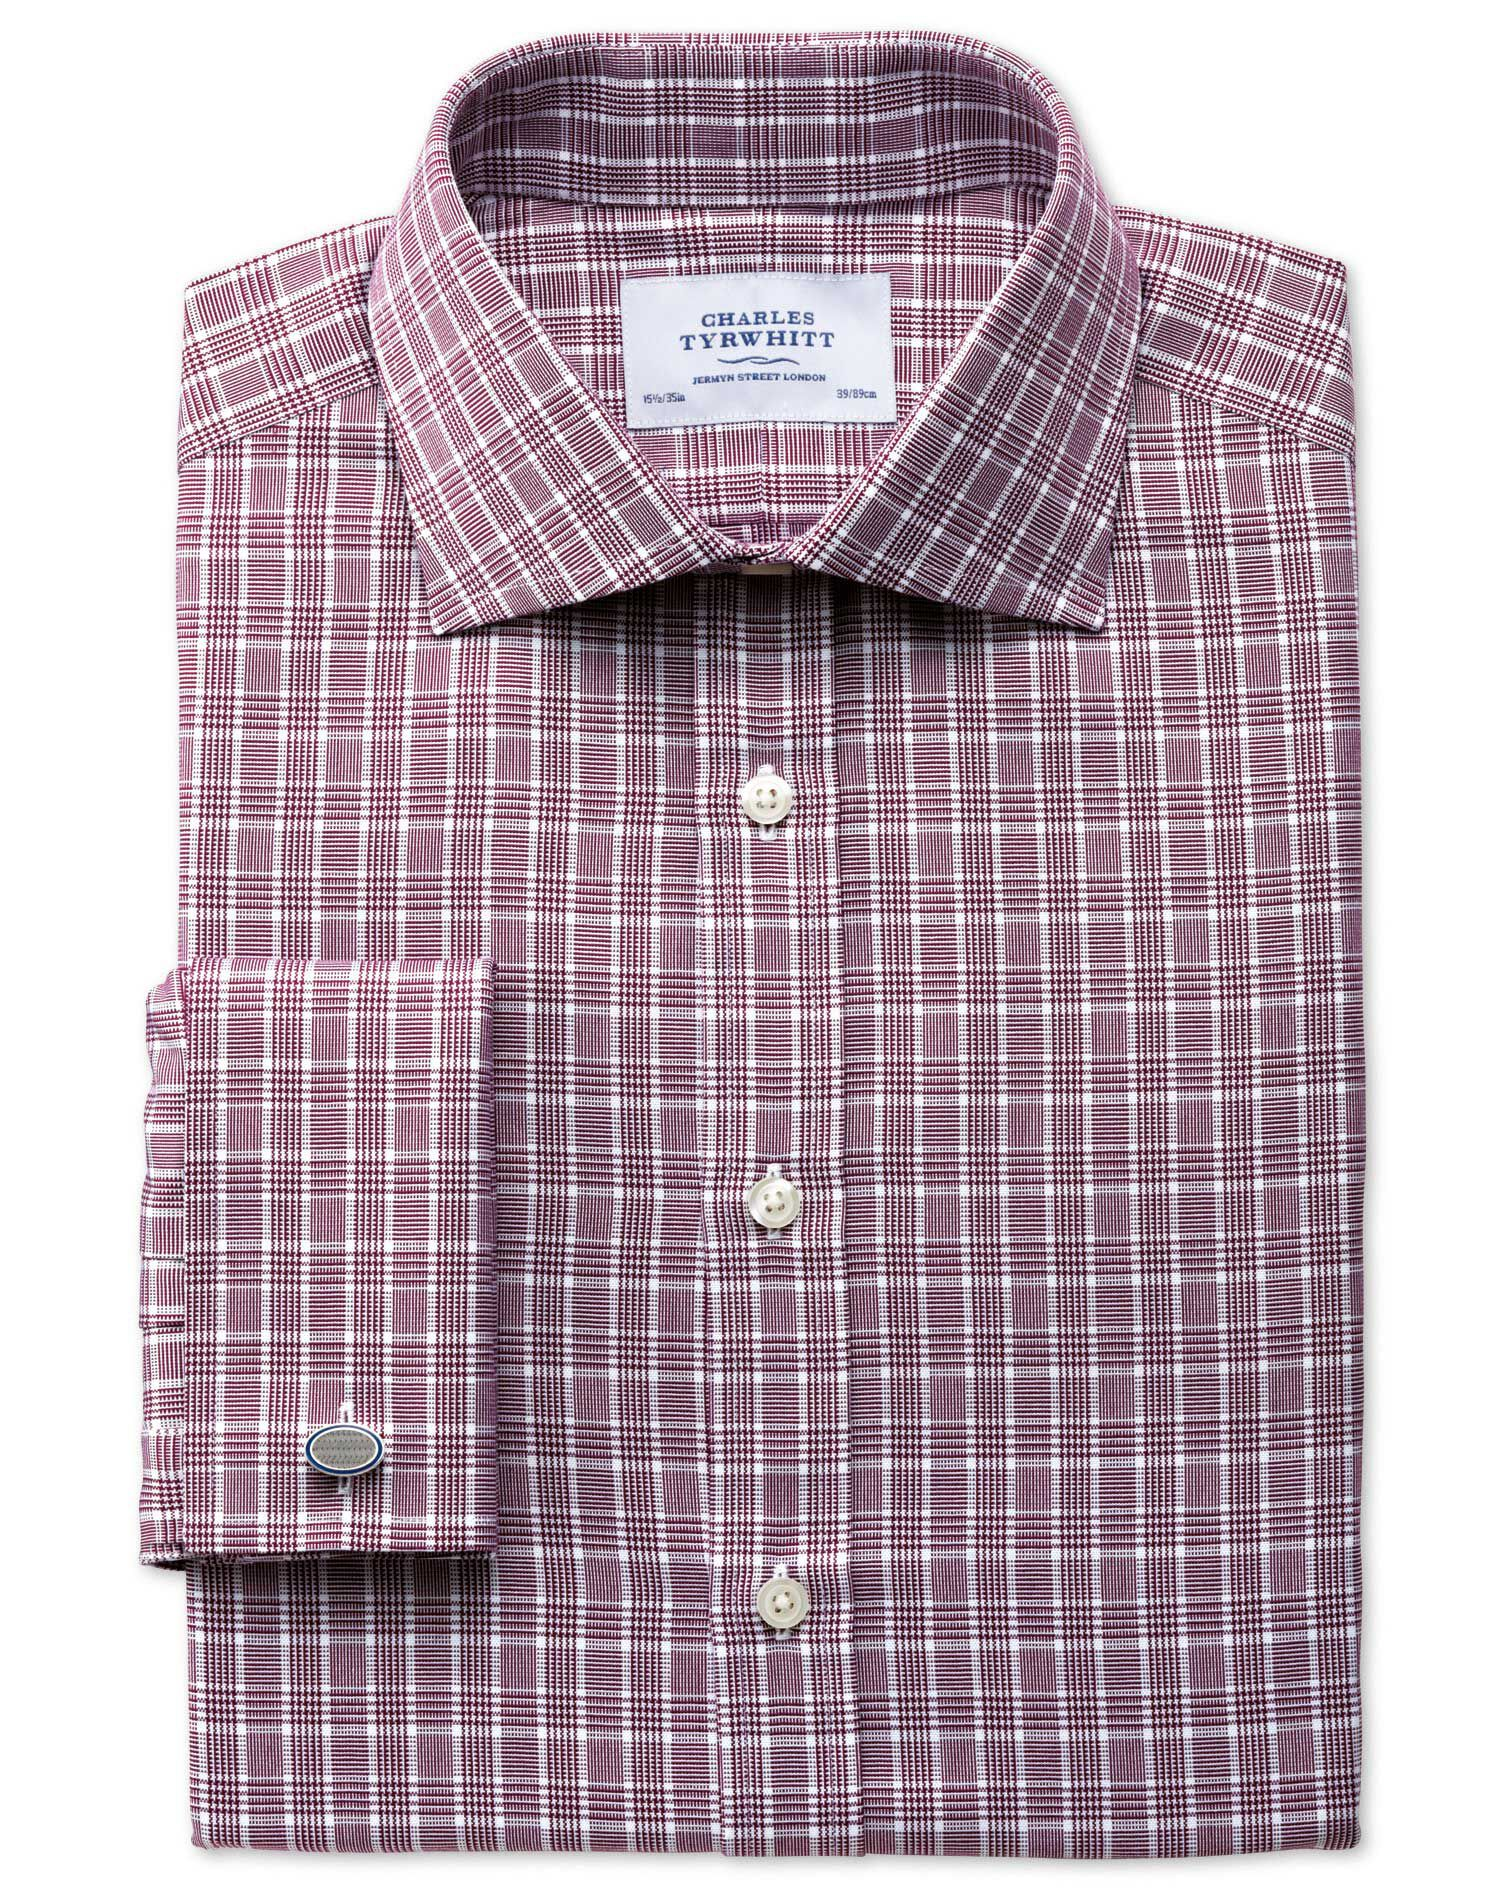 Extra Slim Fit Prince Of Wales Berry Cotton Formal Shirt Double Cuff Size 17.5/34 by Charles Tyrwhit